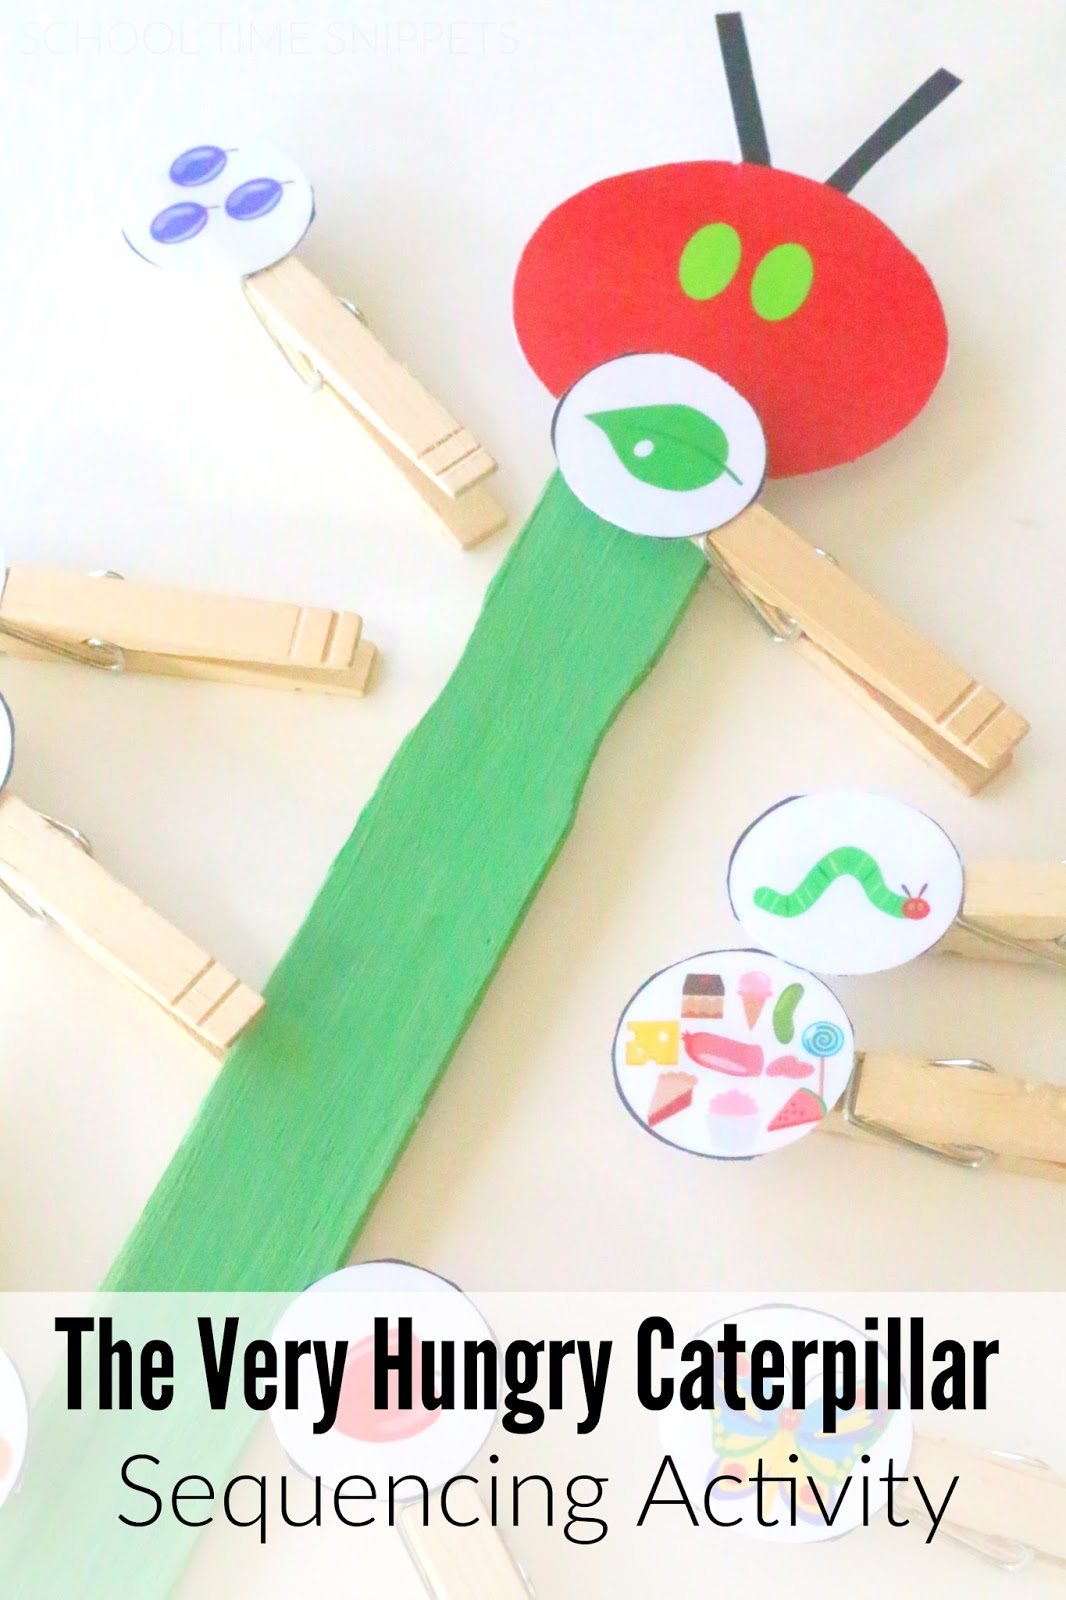 The Very Hungry Caterpillar Story Sequencing Activity   School Time Snippets [ 1600 x 1066 Pixel ]